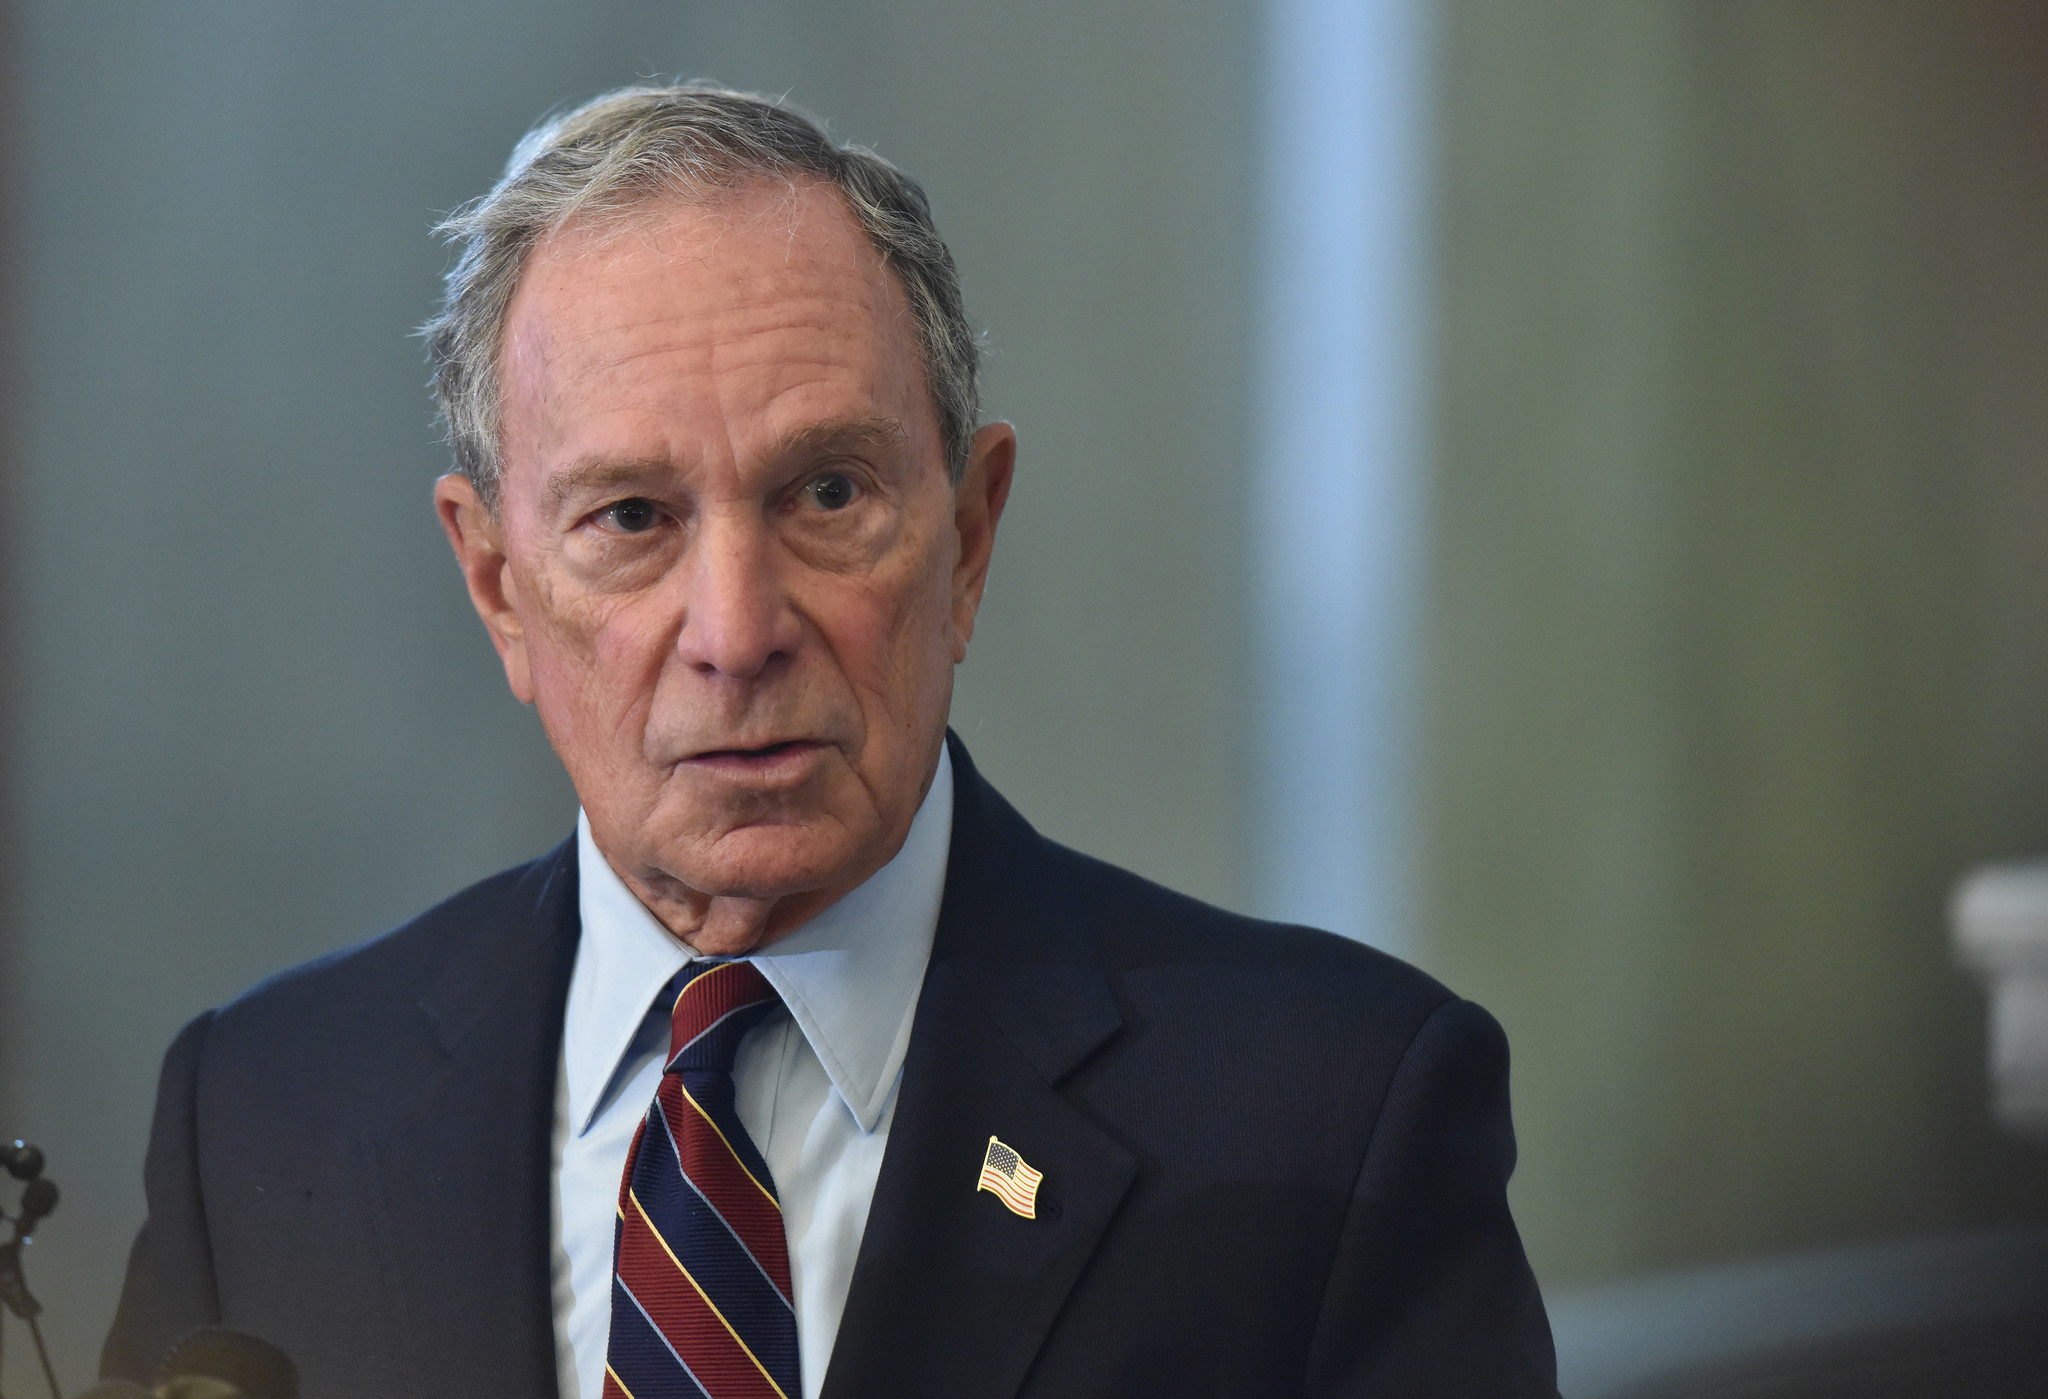 michael bloomberg - photo #18